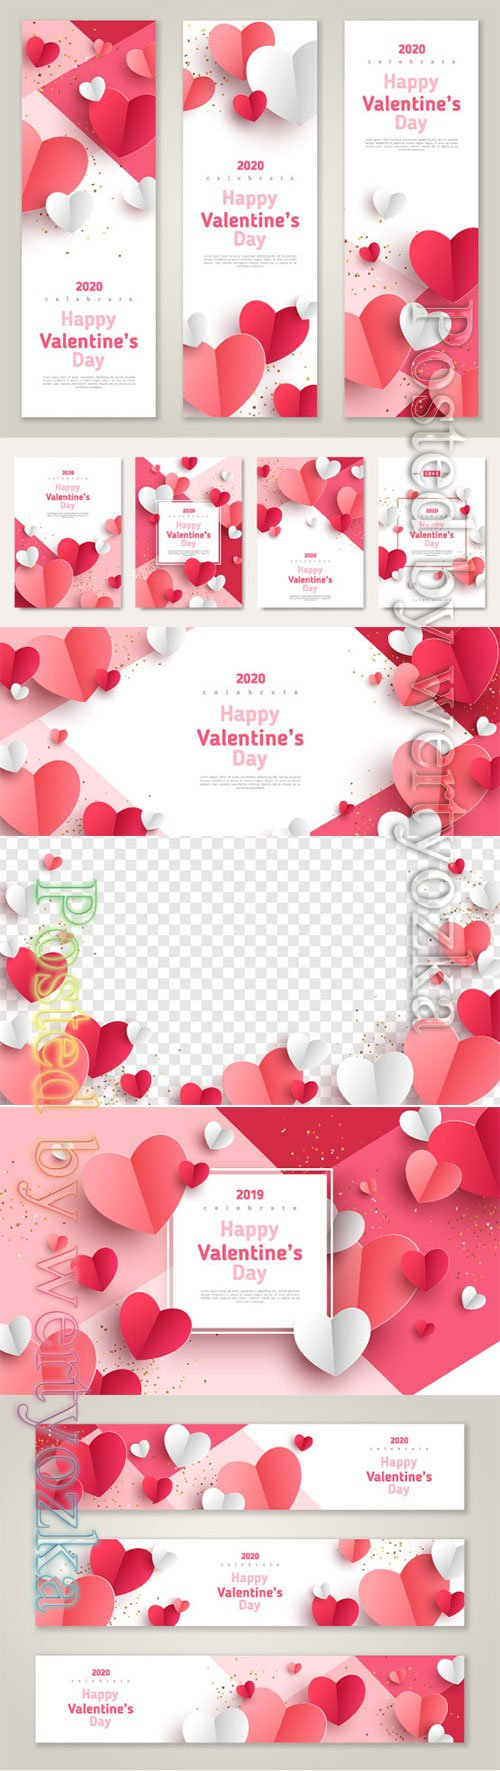 Valentines day vector background with heart # 3